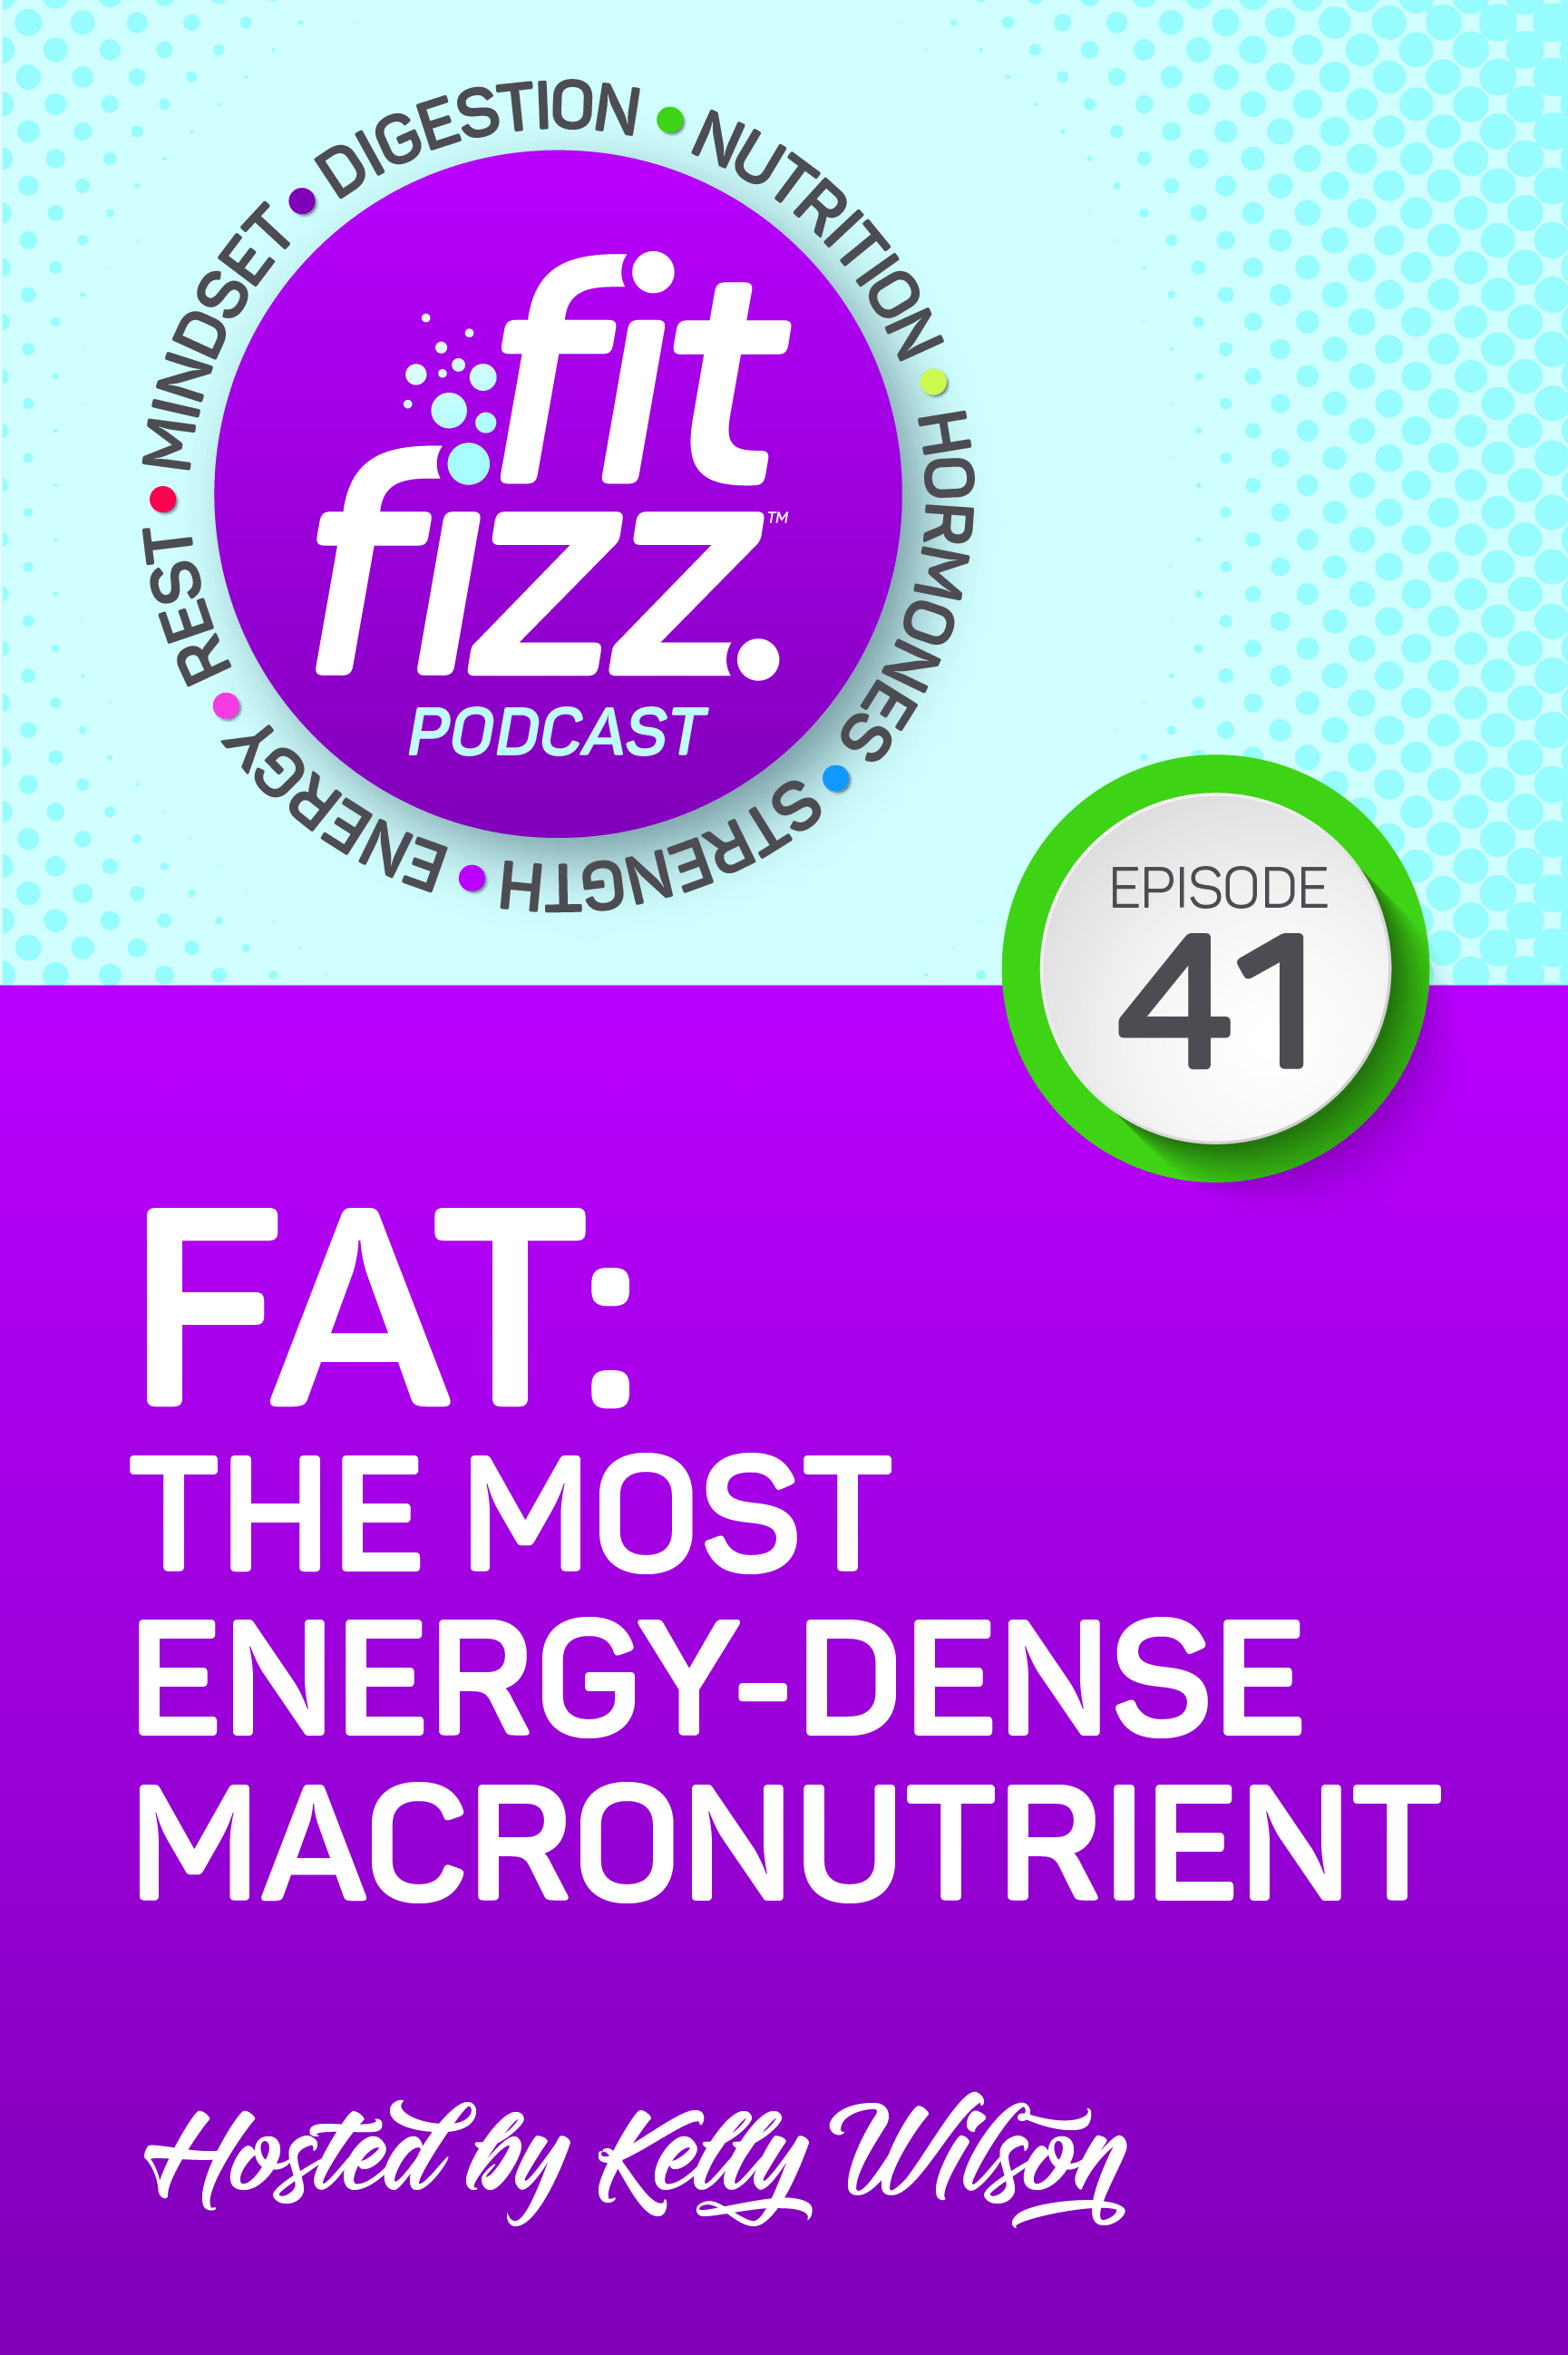 EP 41: Fat: The Most Energy-Dense Macronutrient We\'ve been talking about macronutrients, carbs, protein, and last but not least — today is all about the macro which is fat. And I say it\'s not least because both carbs and protein each have 4 calories per gram, and fats contain 9 calories per gram. And that\'s not a bad thing. It can really work to your advantage once you learn about how macros work.